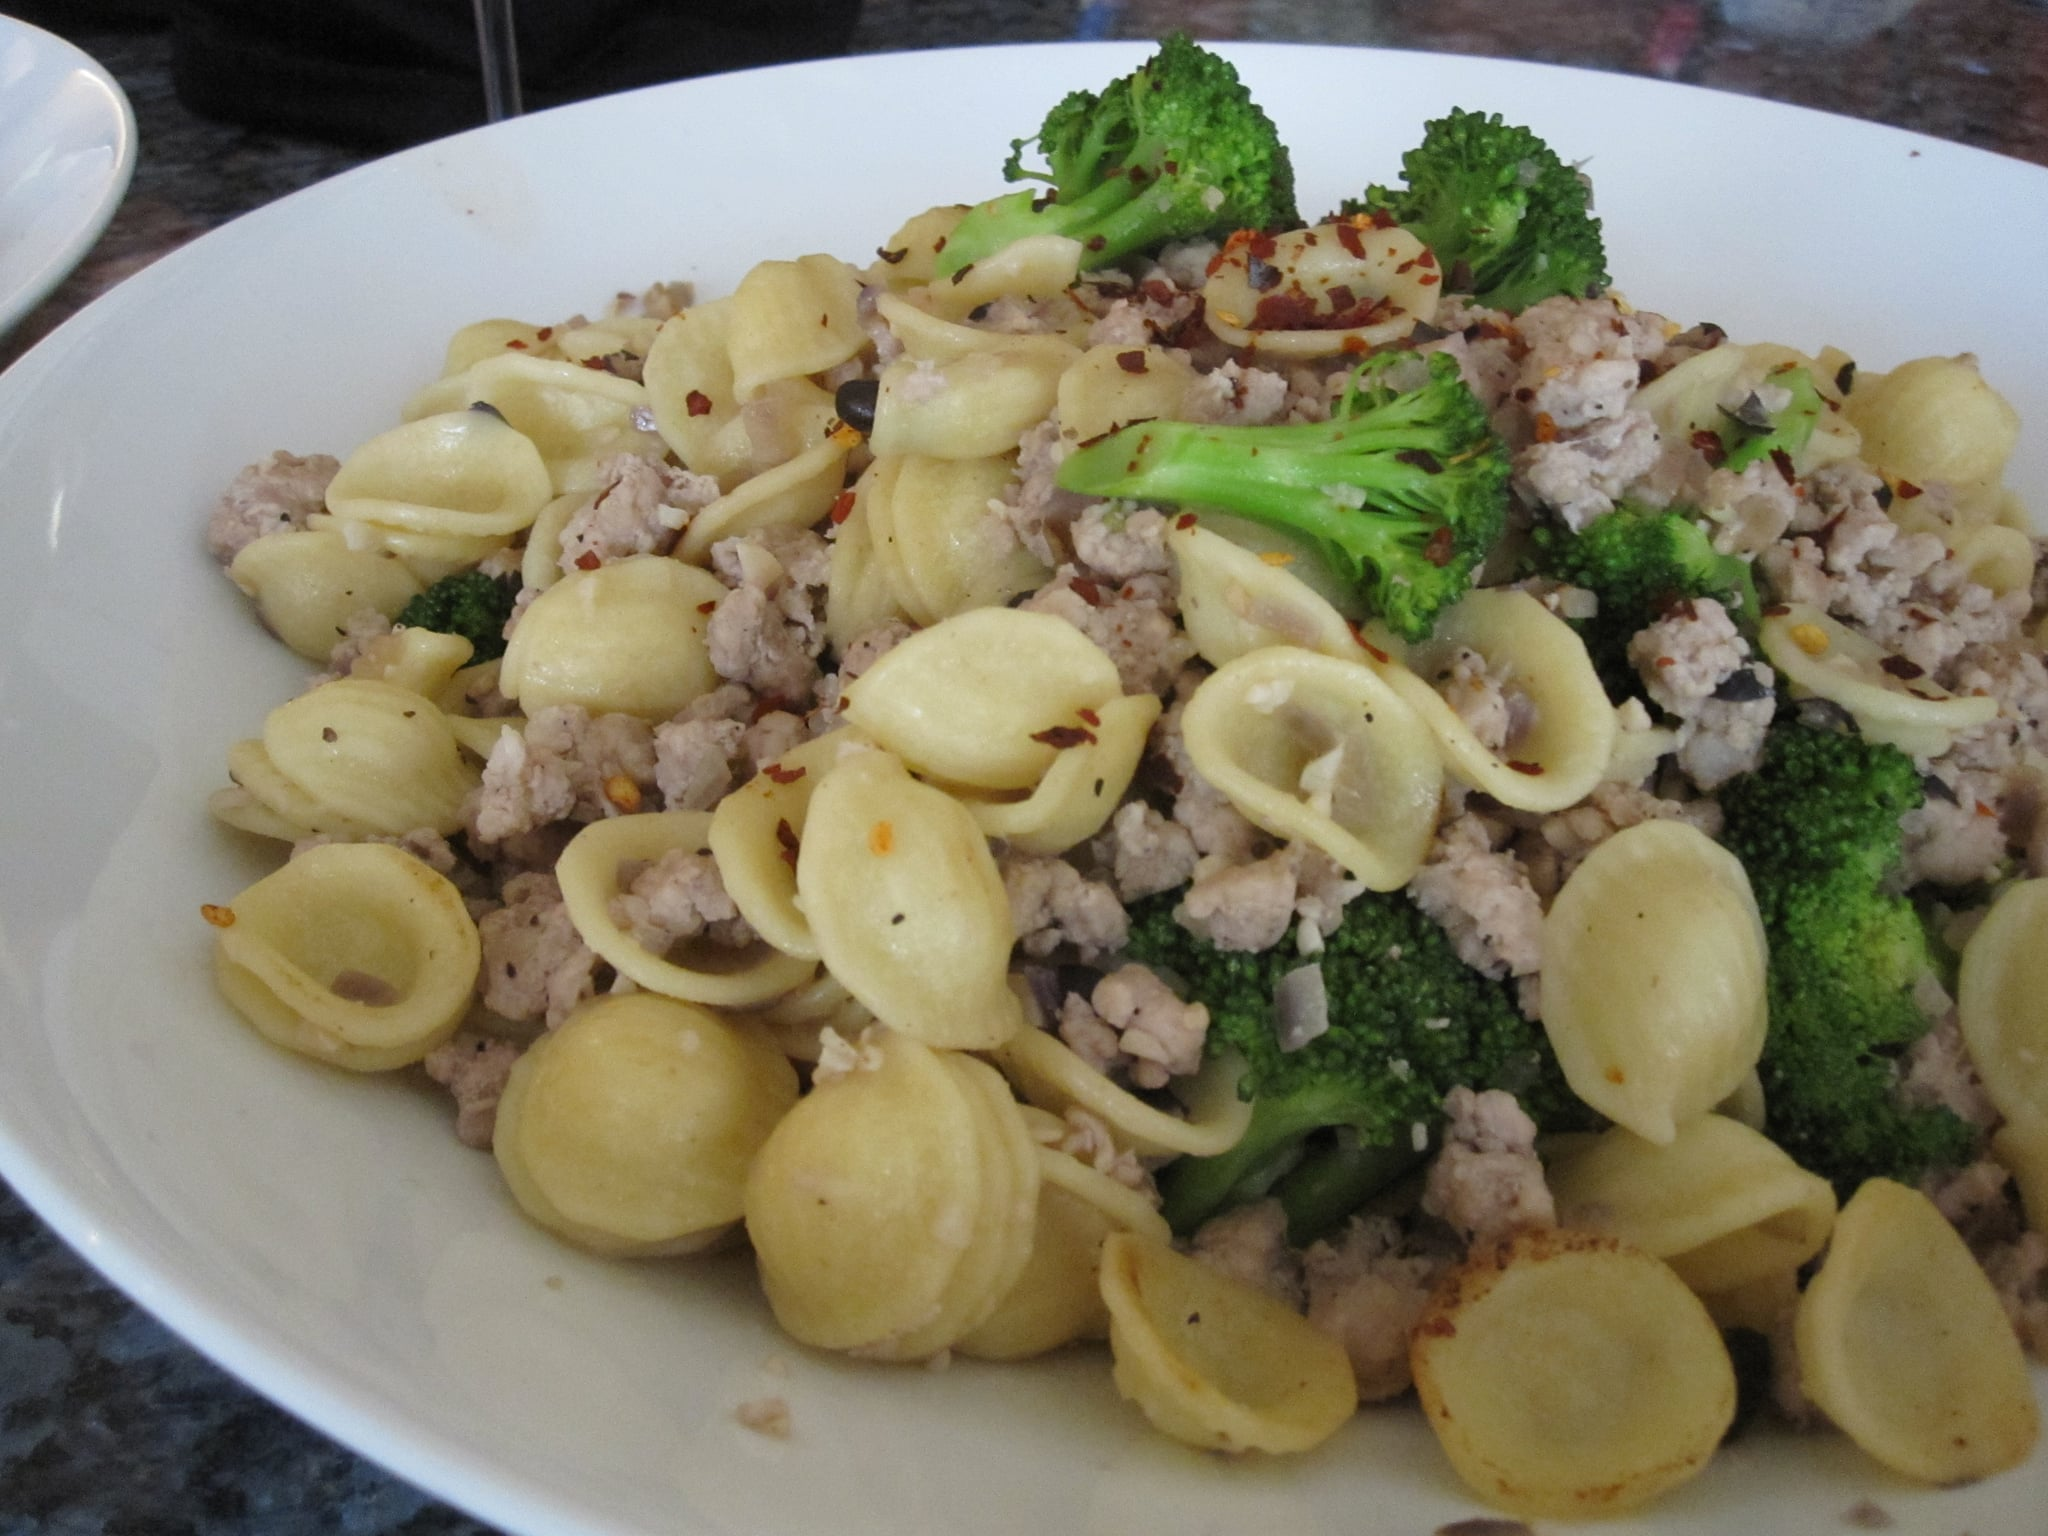 This plate of pasta was created by Ming Tsai. First he cooks the pasta, then he drains it, and sets it aside while he makes the sausage, black bean, and broccoli sauce. It's an interesting technique for only dirtying one pot.